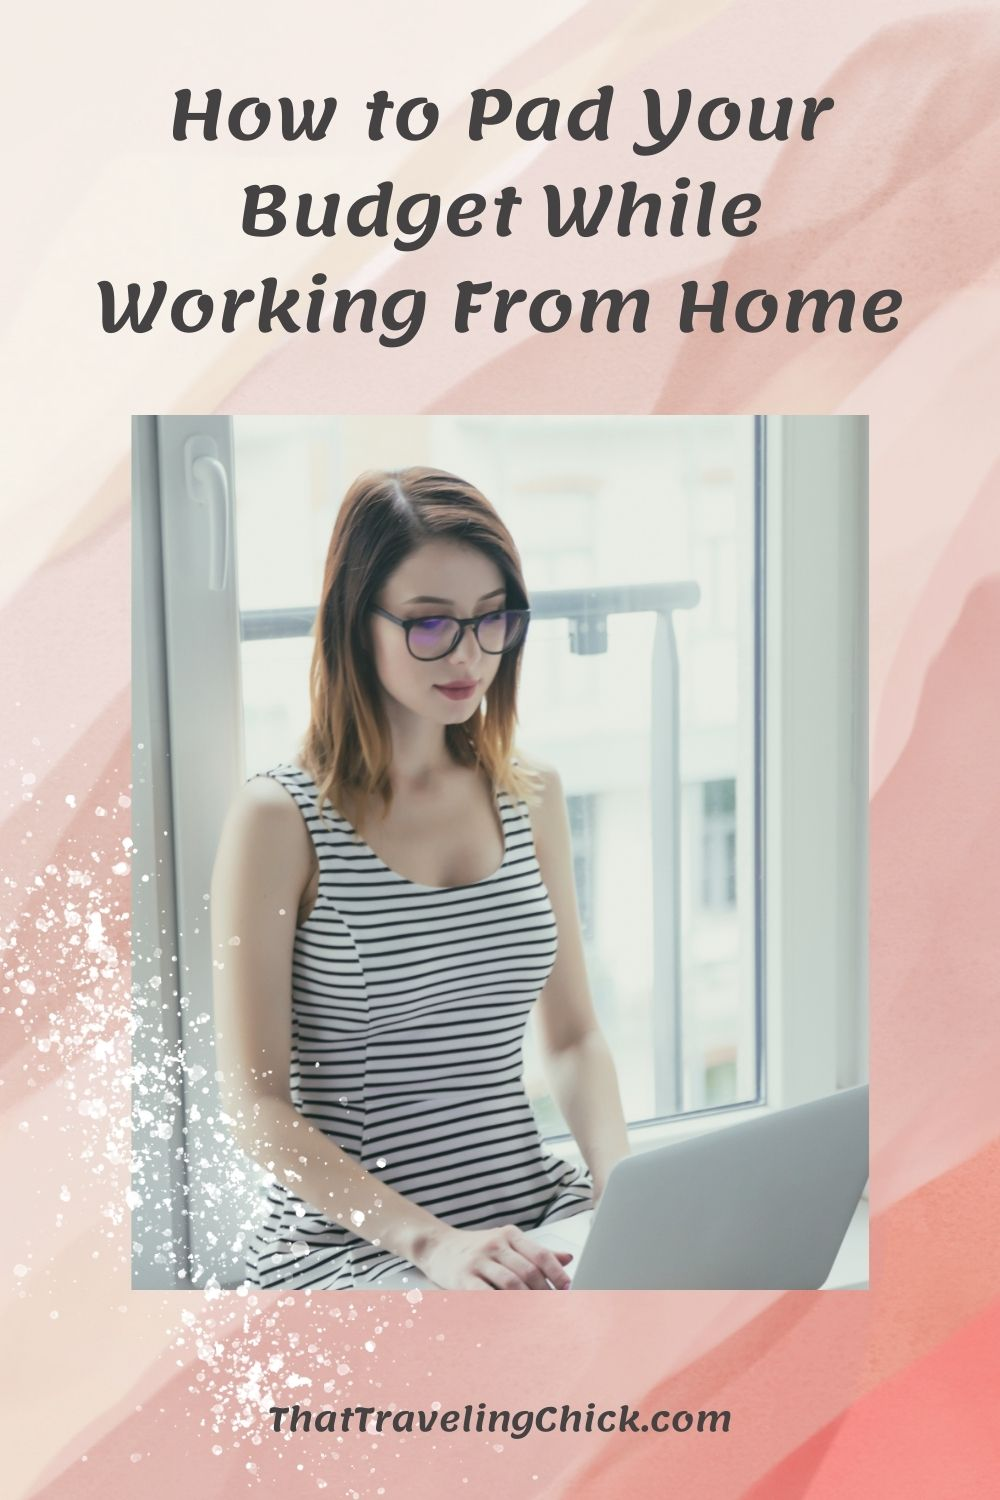 How to Pad Your Budget While Working From Home #workingfromhome